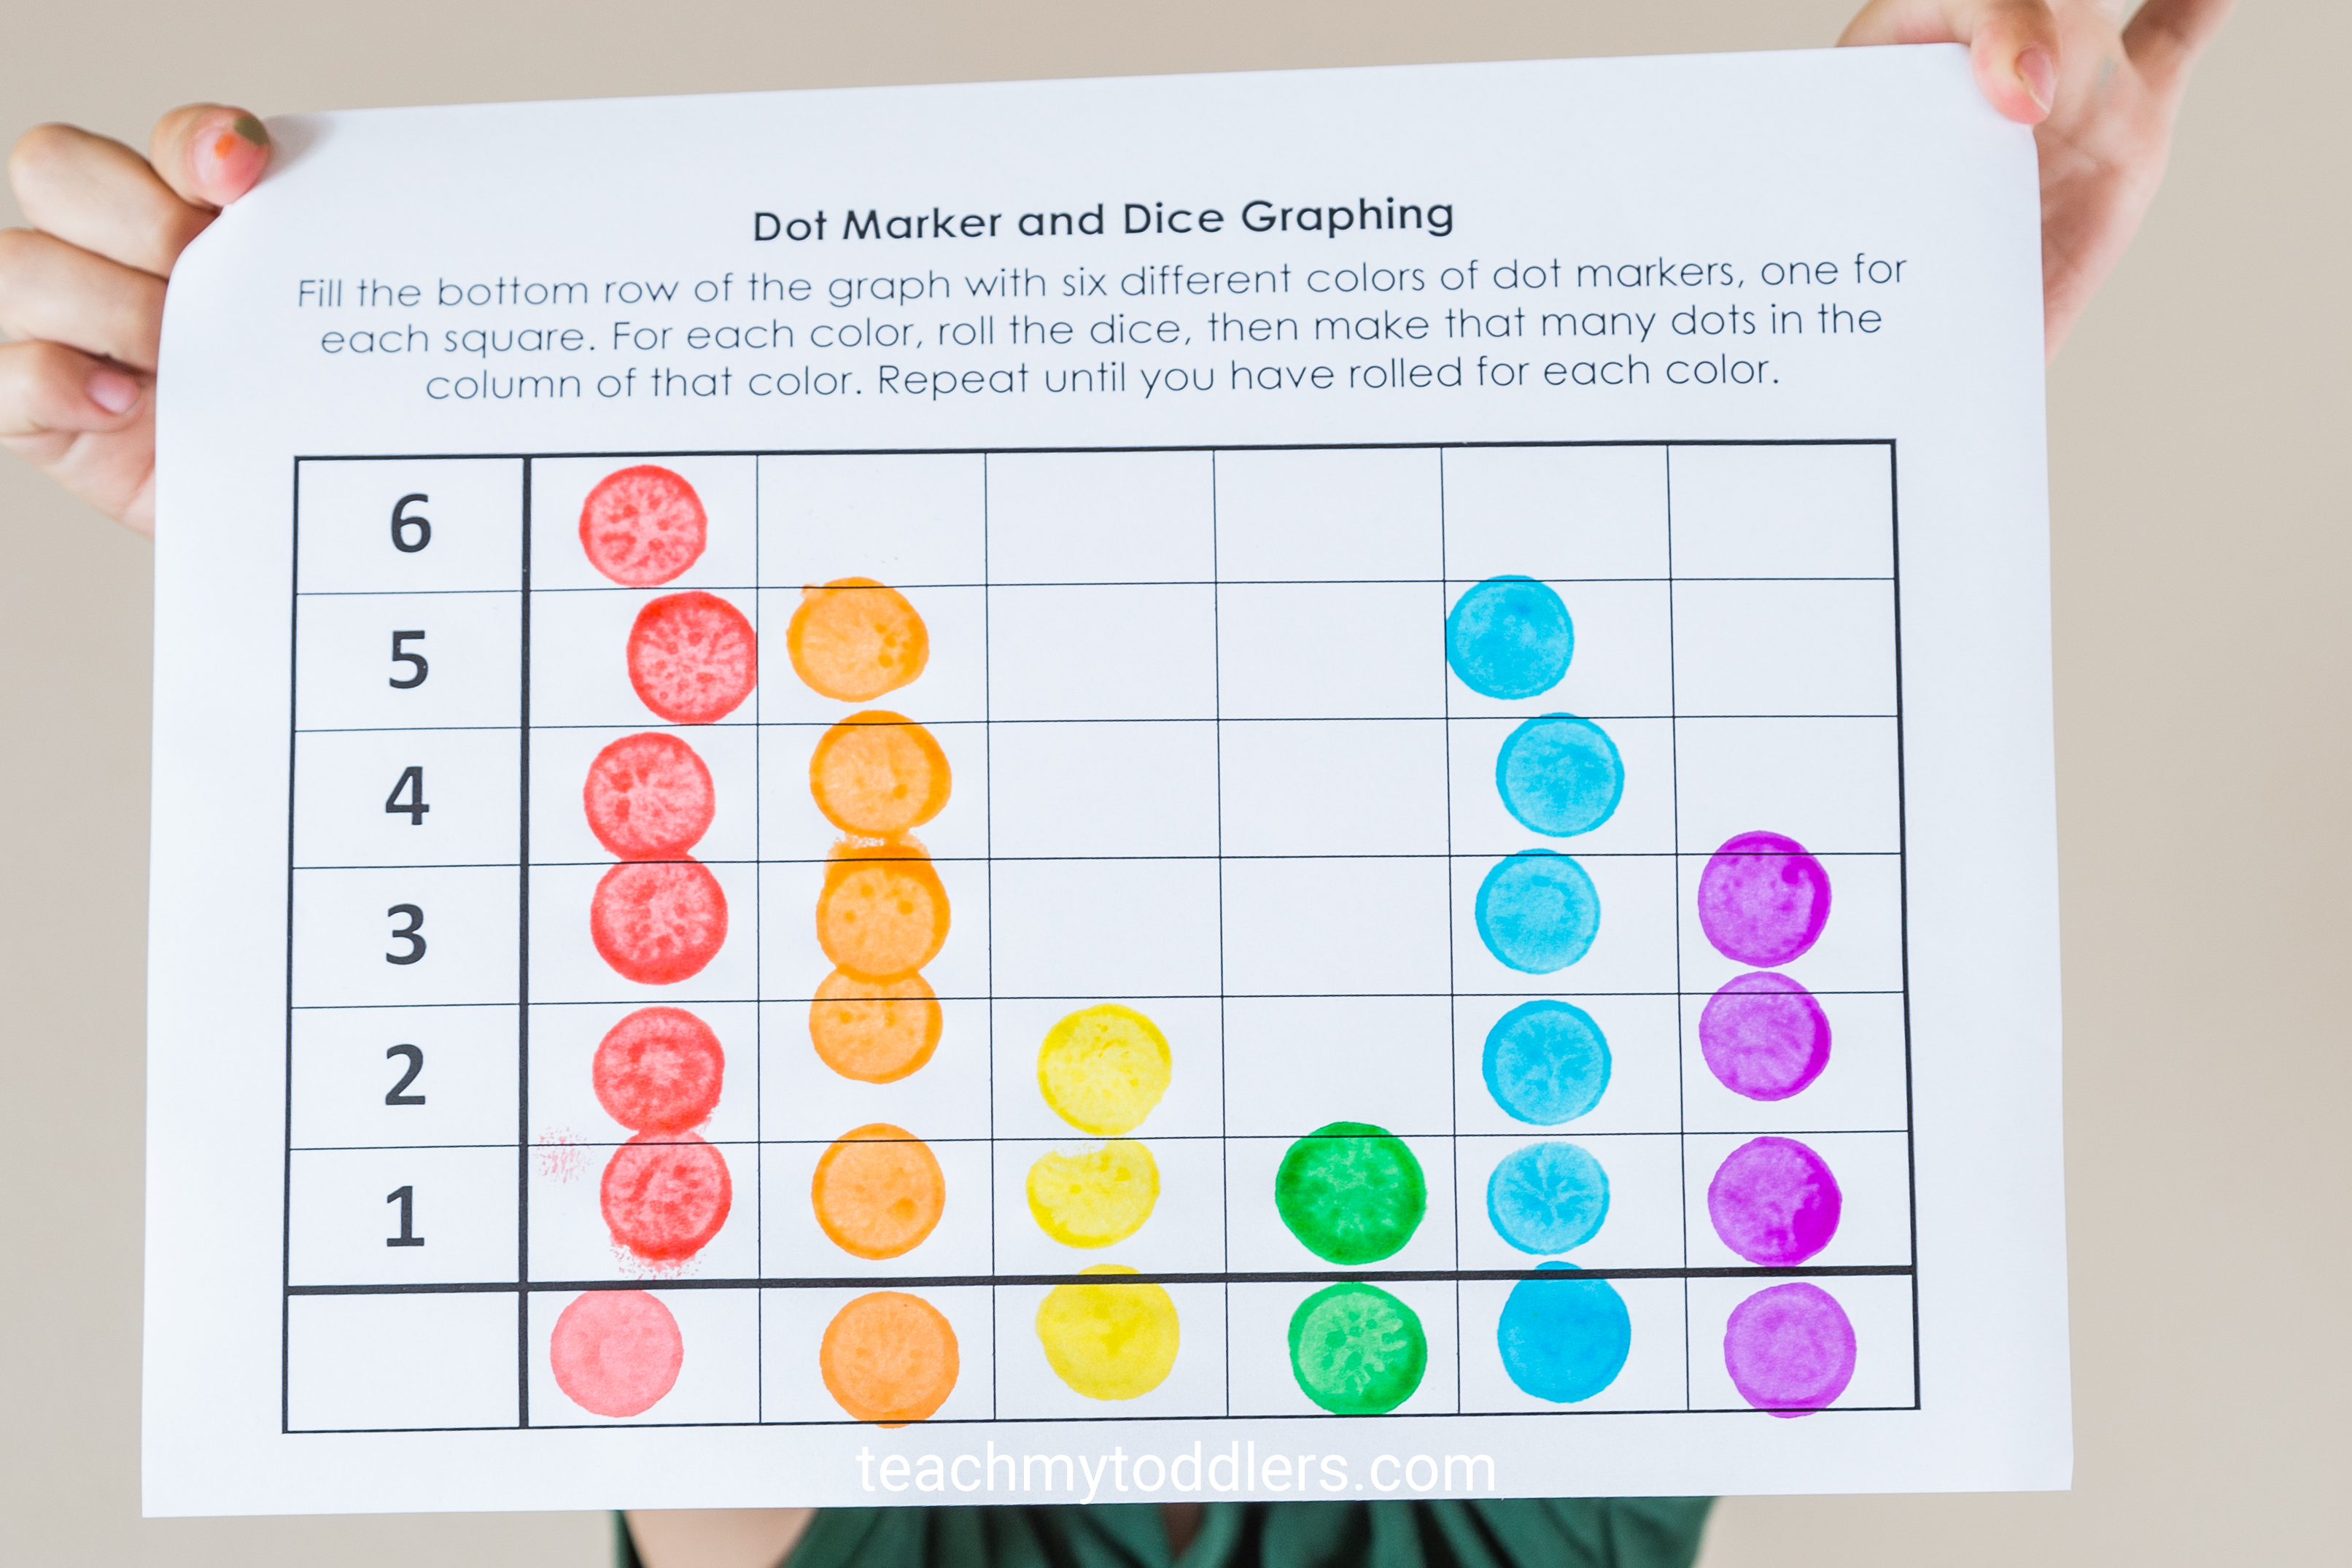 Discover how to use this dot marker dice graph activity to teach toddlers numbers